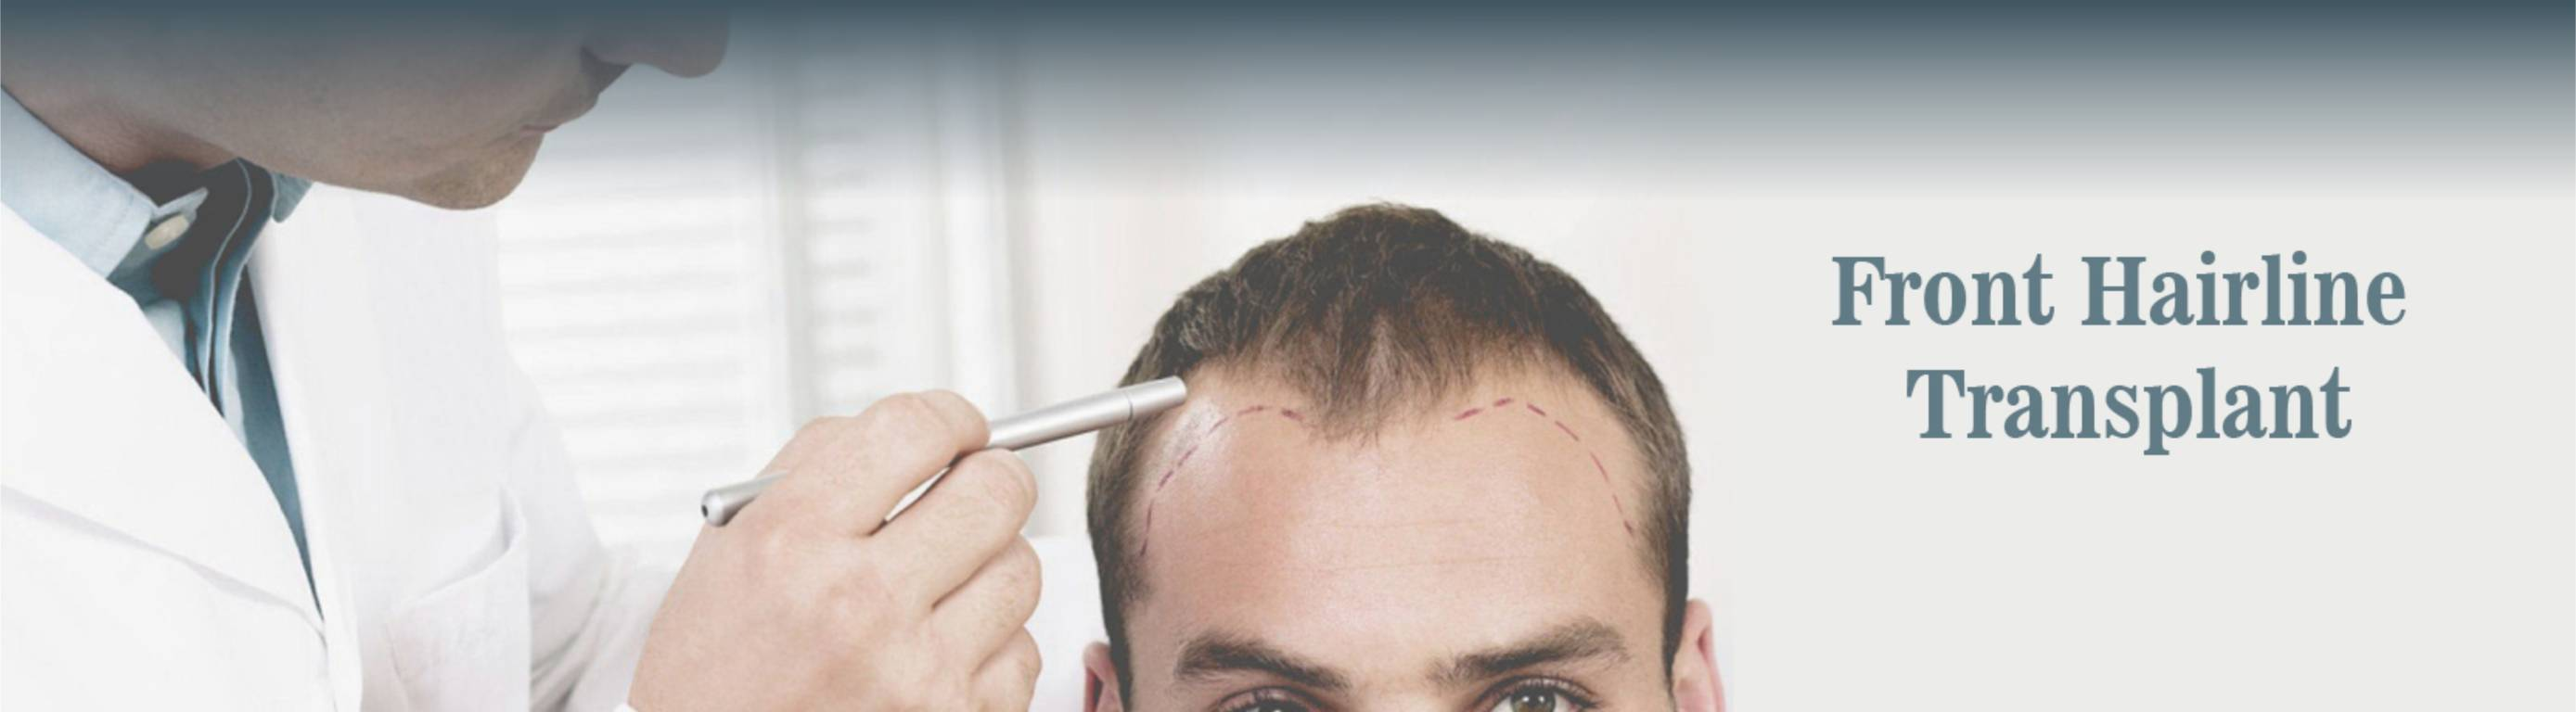 HAIR TRANSPLANT AND RESTORATION DONE AT DEZIRE CLINIC